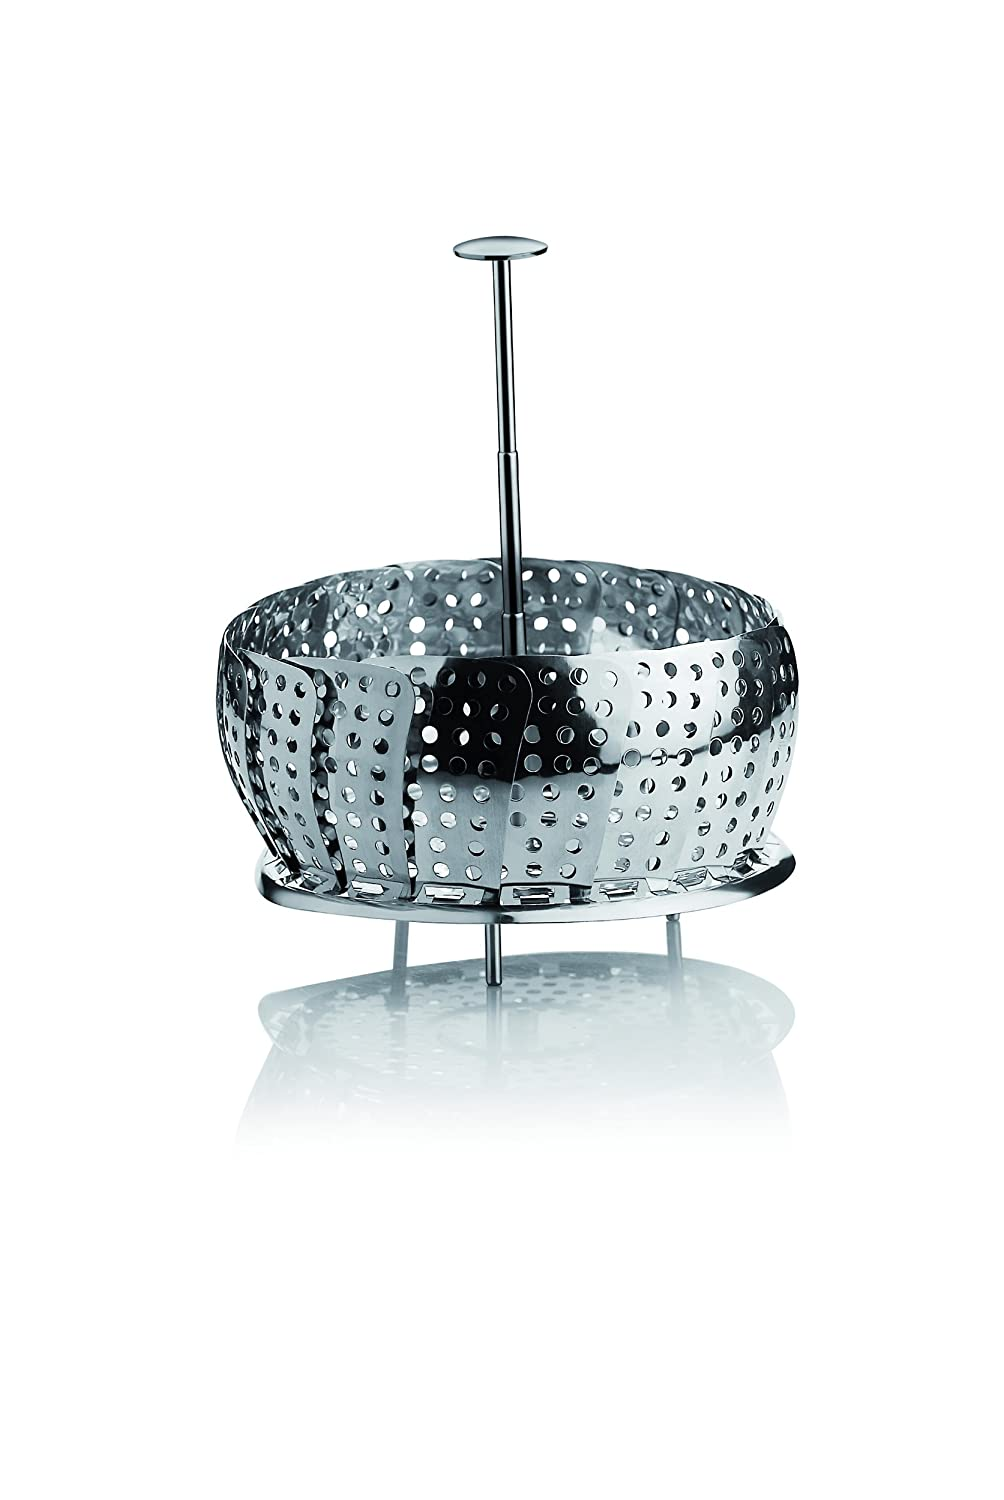 Barazzoni Baskets for Steaming Food with Telescopic Handles, Nickel-Free Stainless Steel, 23 cm